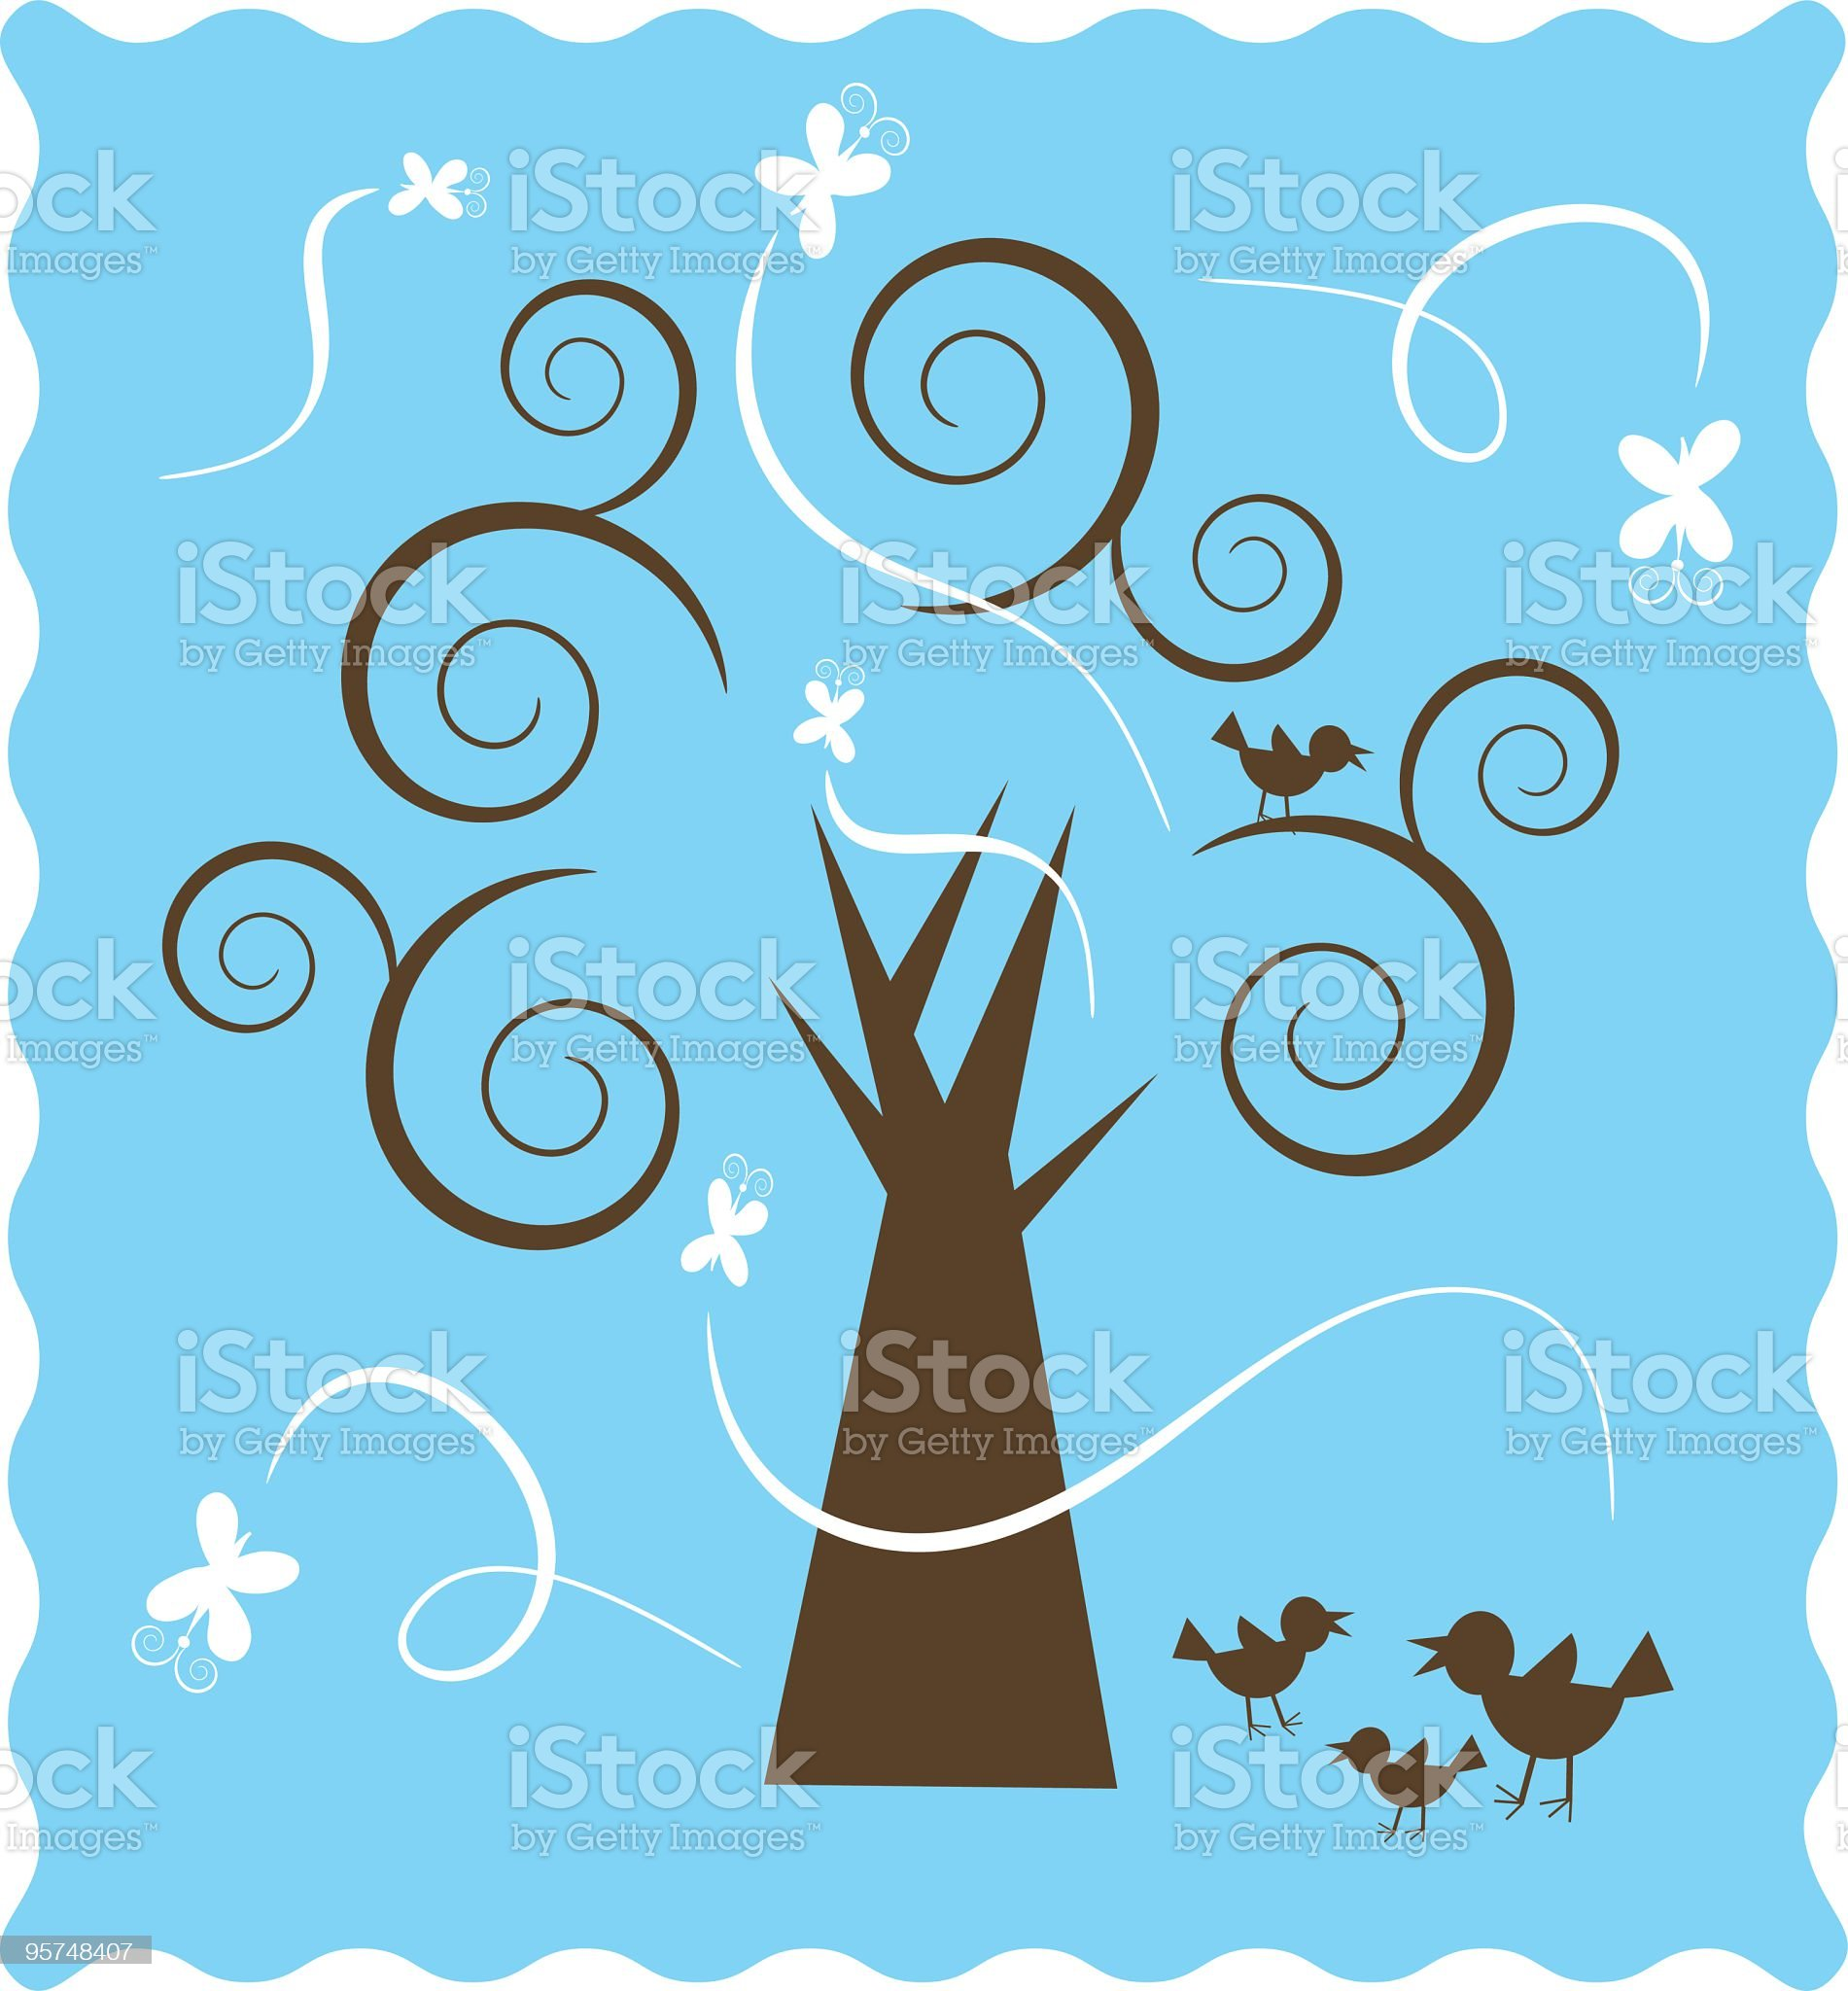 Spiral tree with bird family and butterflies royalty-free stock vector art